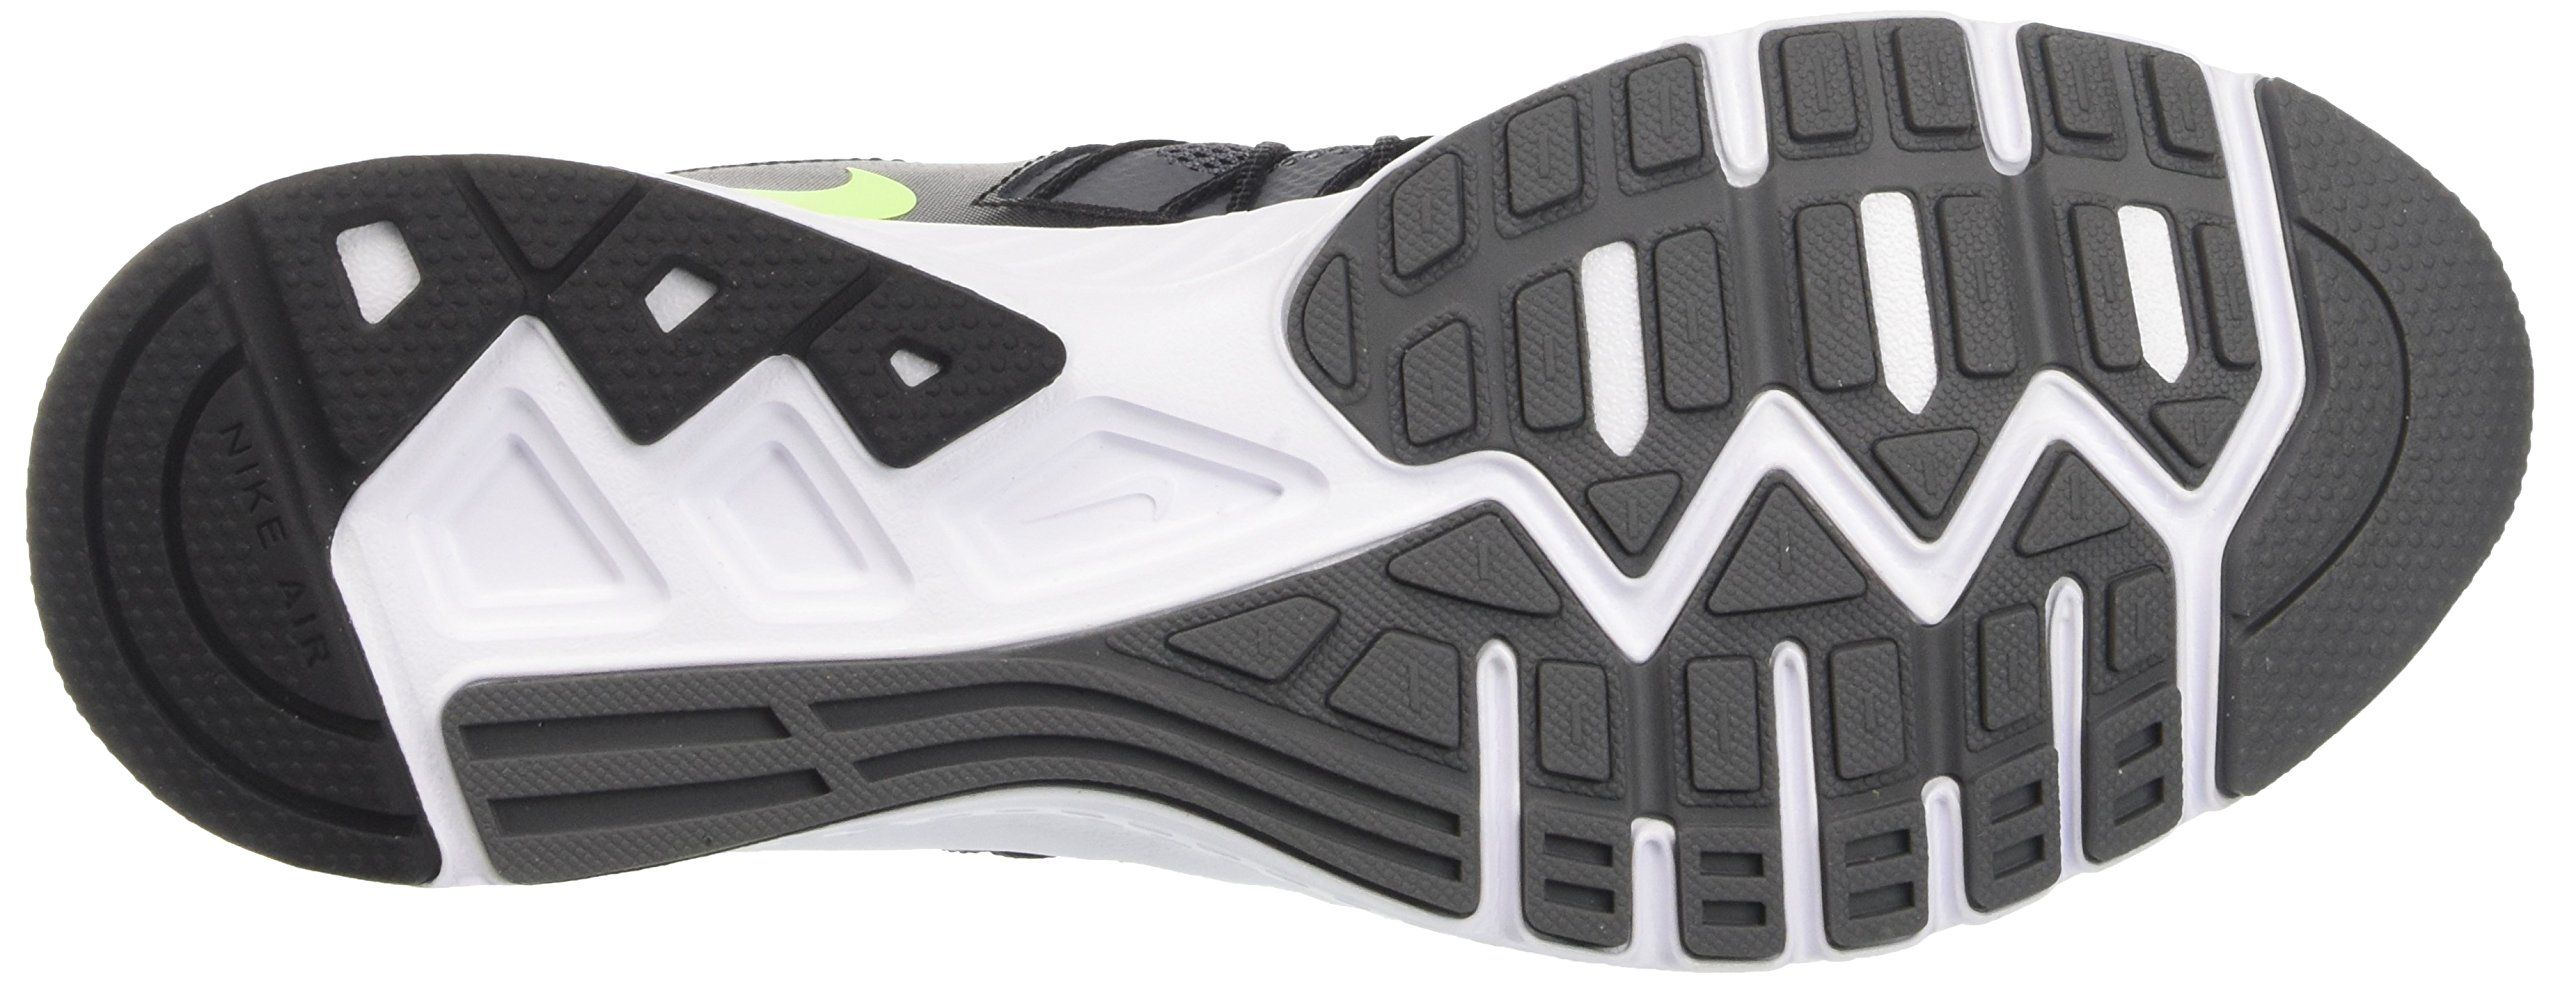 d564923da1455 Golf Shoes     New Nike Mens Air Relentless 6 Running Shoe Black Volt 9.5     Click photo to assess even more information. (This is an affiliate link).